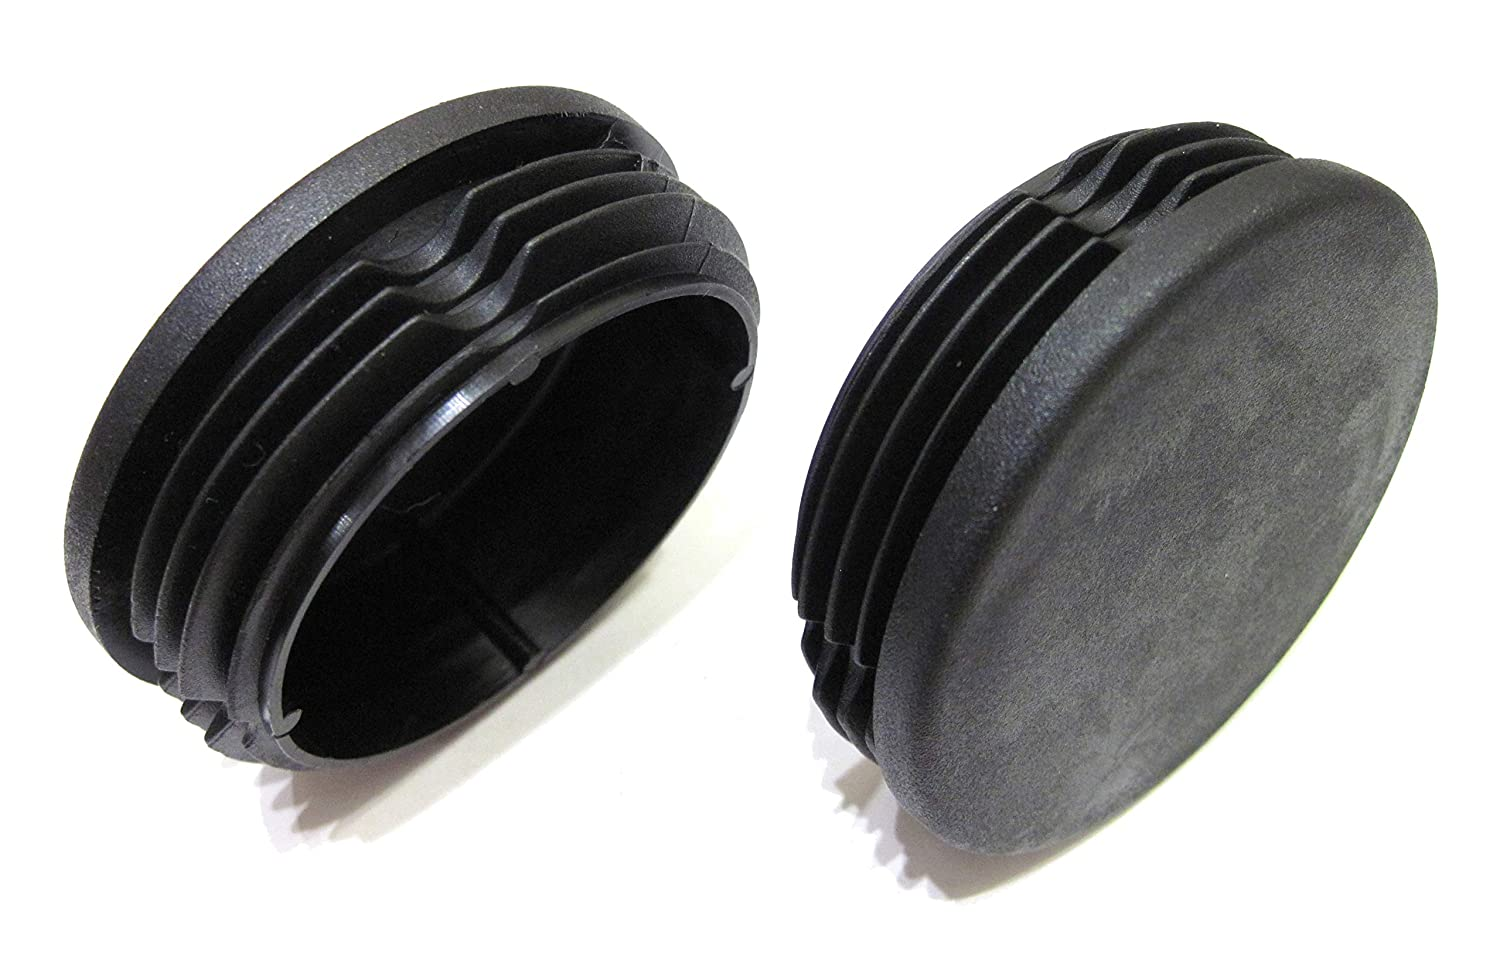 2pcs Pack: 2 3/8 Inch (Approx. 60mm) Round Black Plastic End Cap (for Hole Size from 2 1/8 to 2 9/32, Including 2 1/4 inches, 54mm - 58mm), Cover for Fence Post, Furniture Finishing Plug